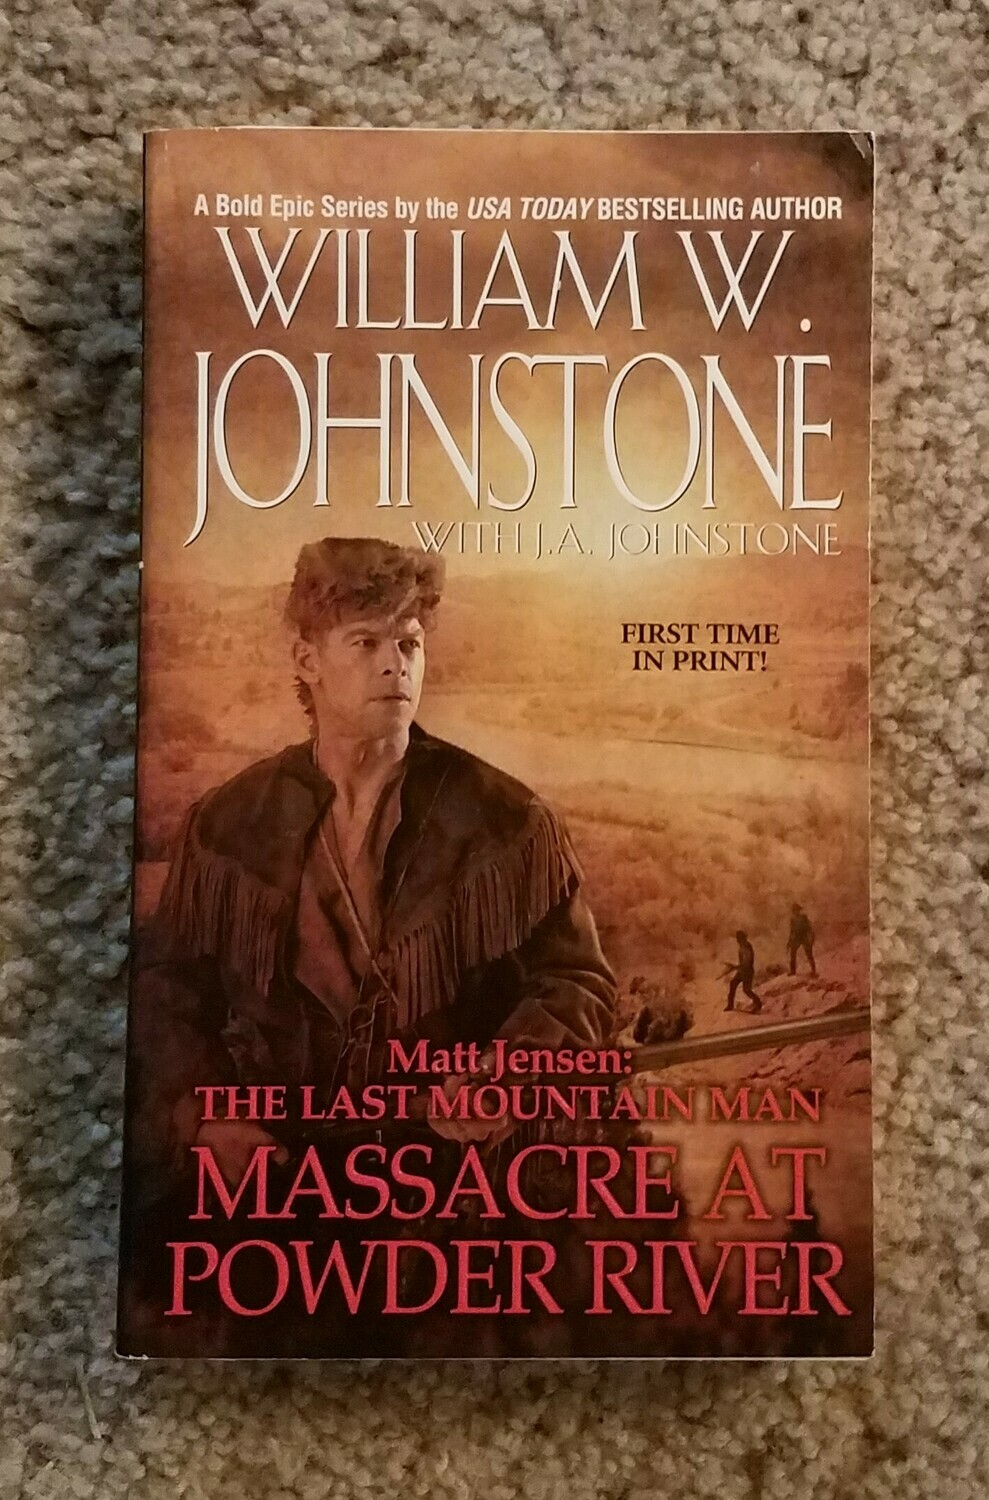 Matt Jensen: The Last Mountain Man - Massacre at Powder River by William W. Johnstone with J.A. Johnstone